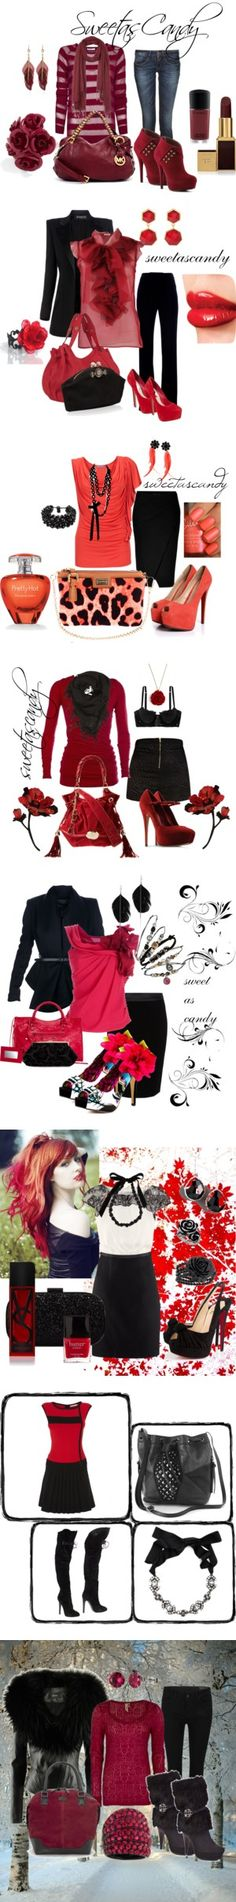 Womens fashion clothes from http://findanswerhere.com/womensfashion